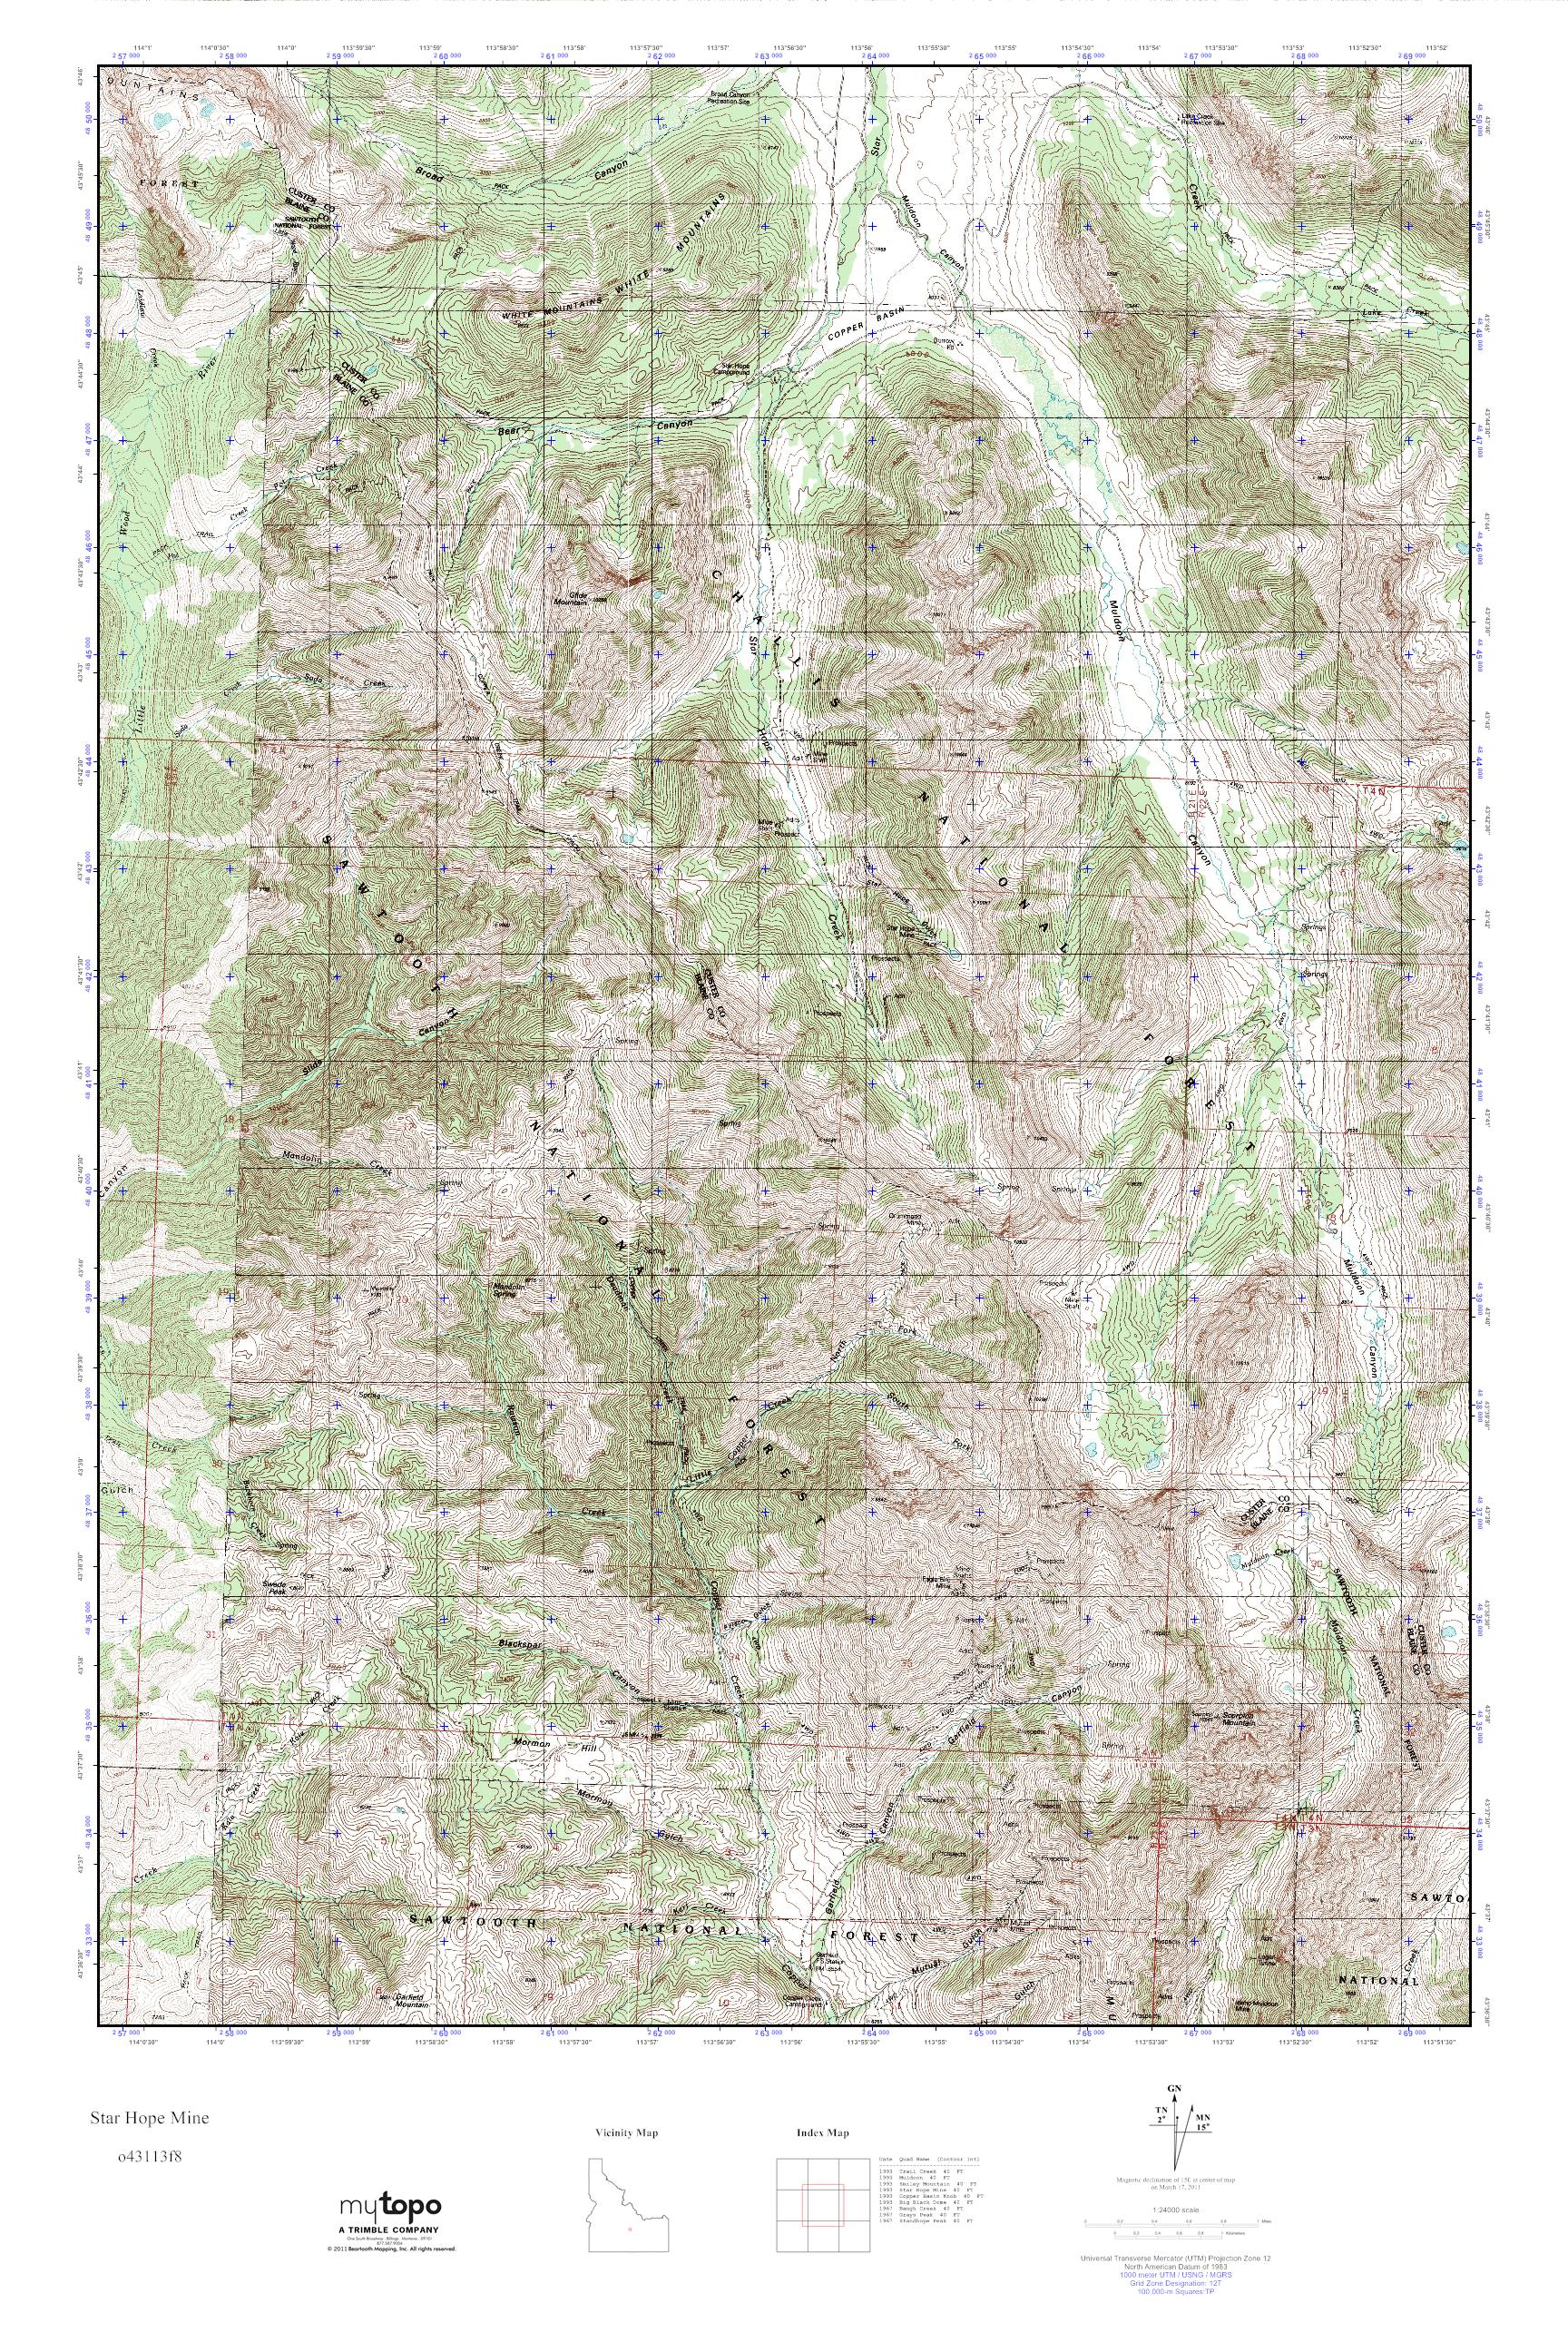 Mytopo Star Hope Mine Idaho Usgs Quad Topo Map